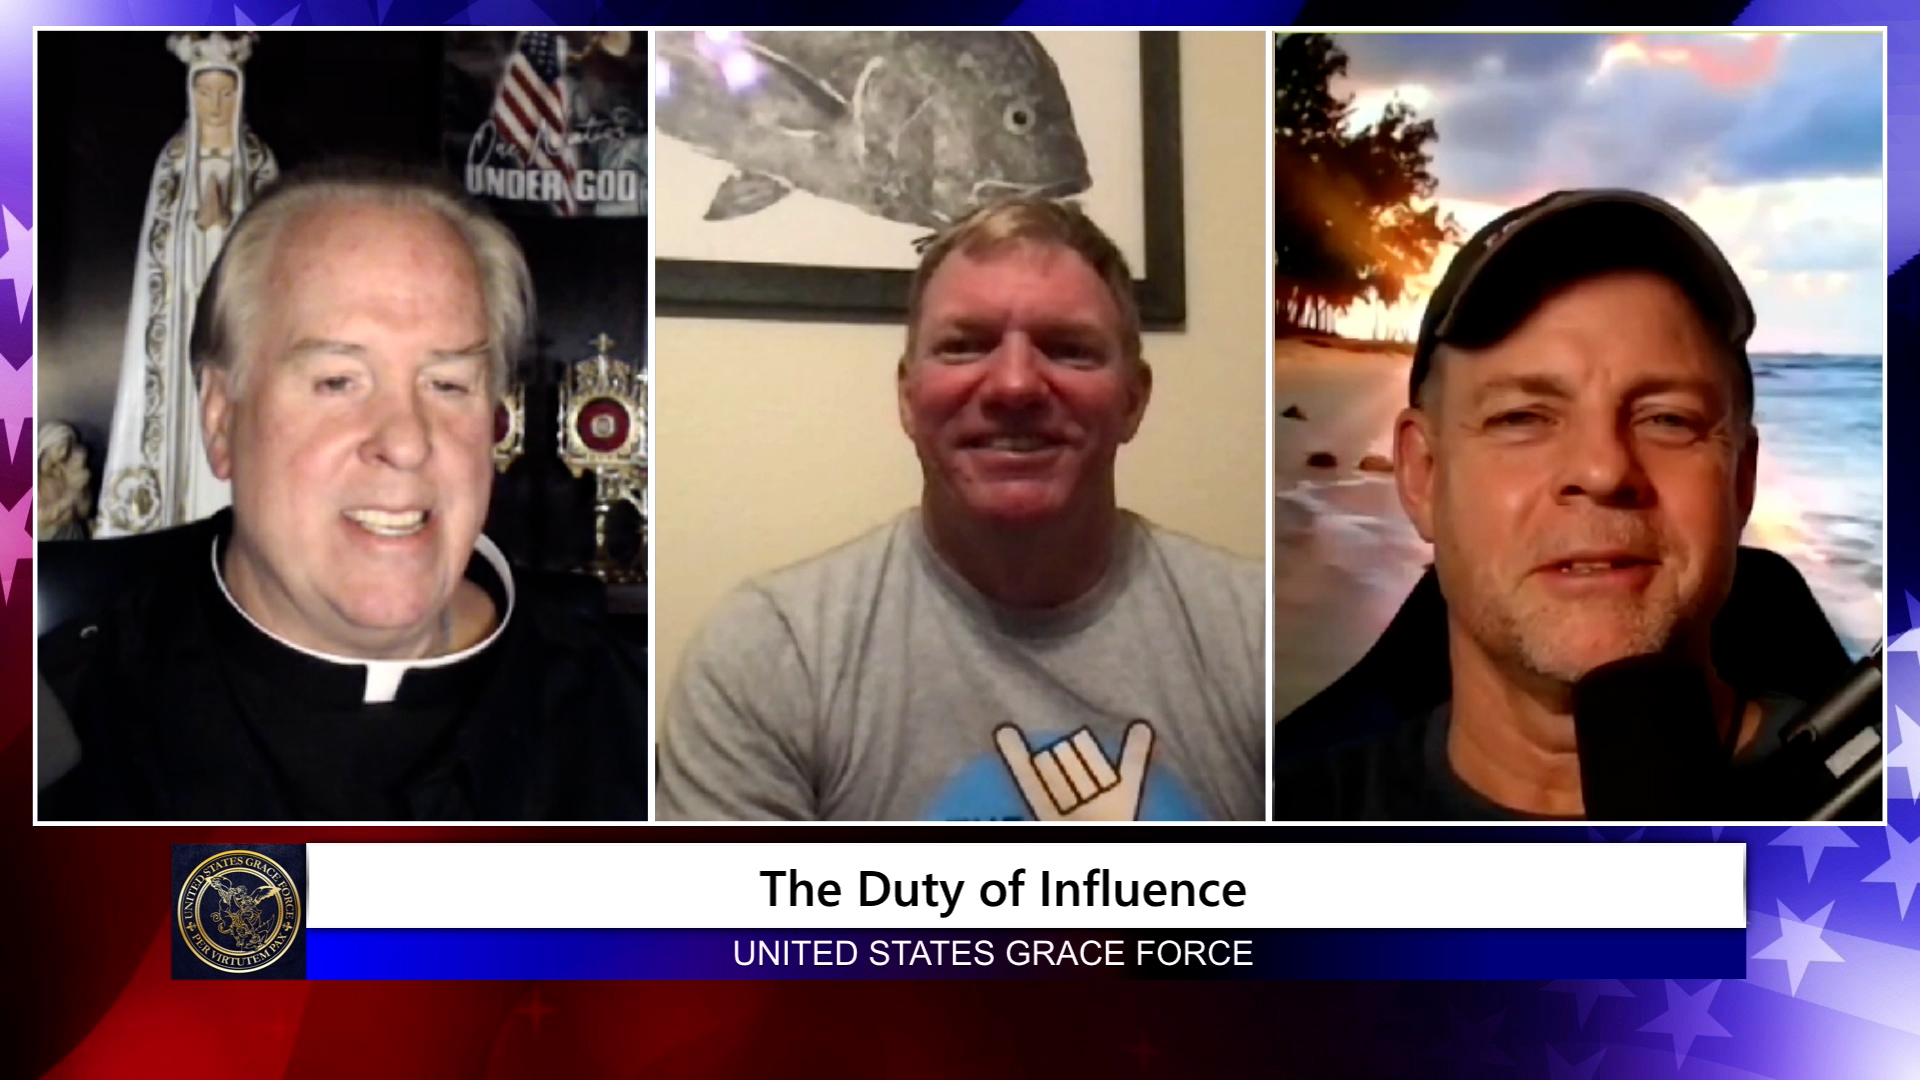 The Duty of Influence